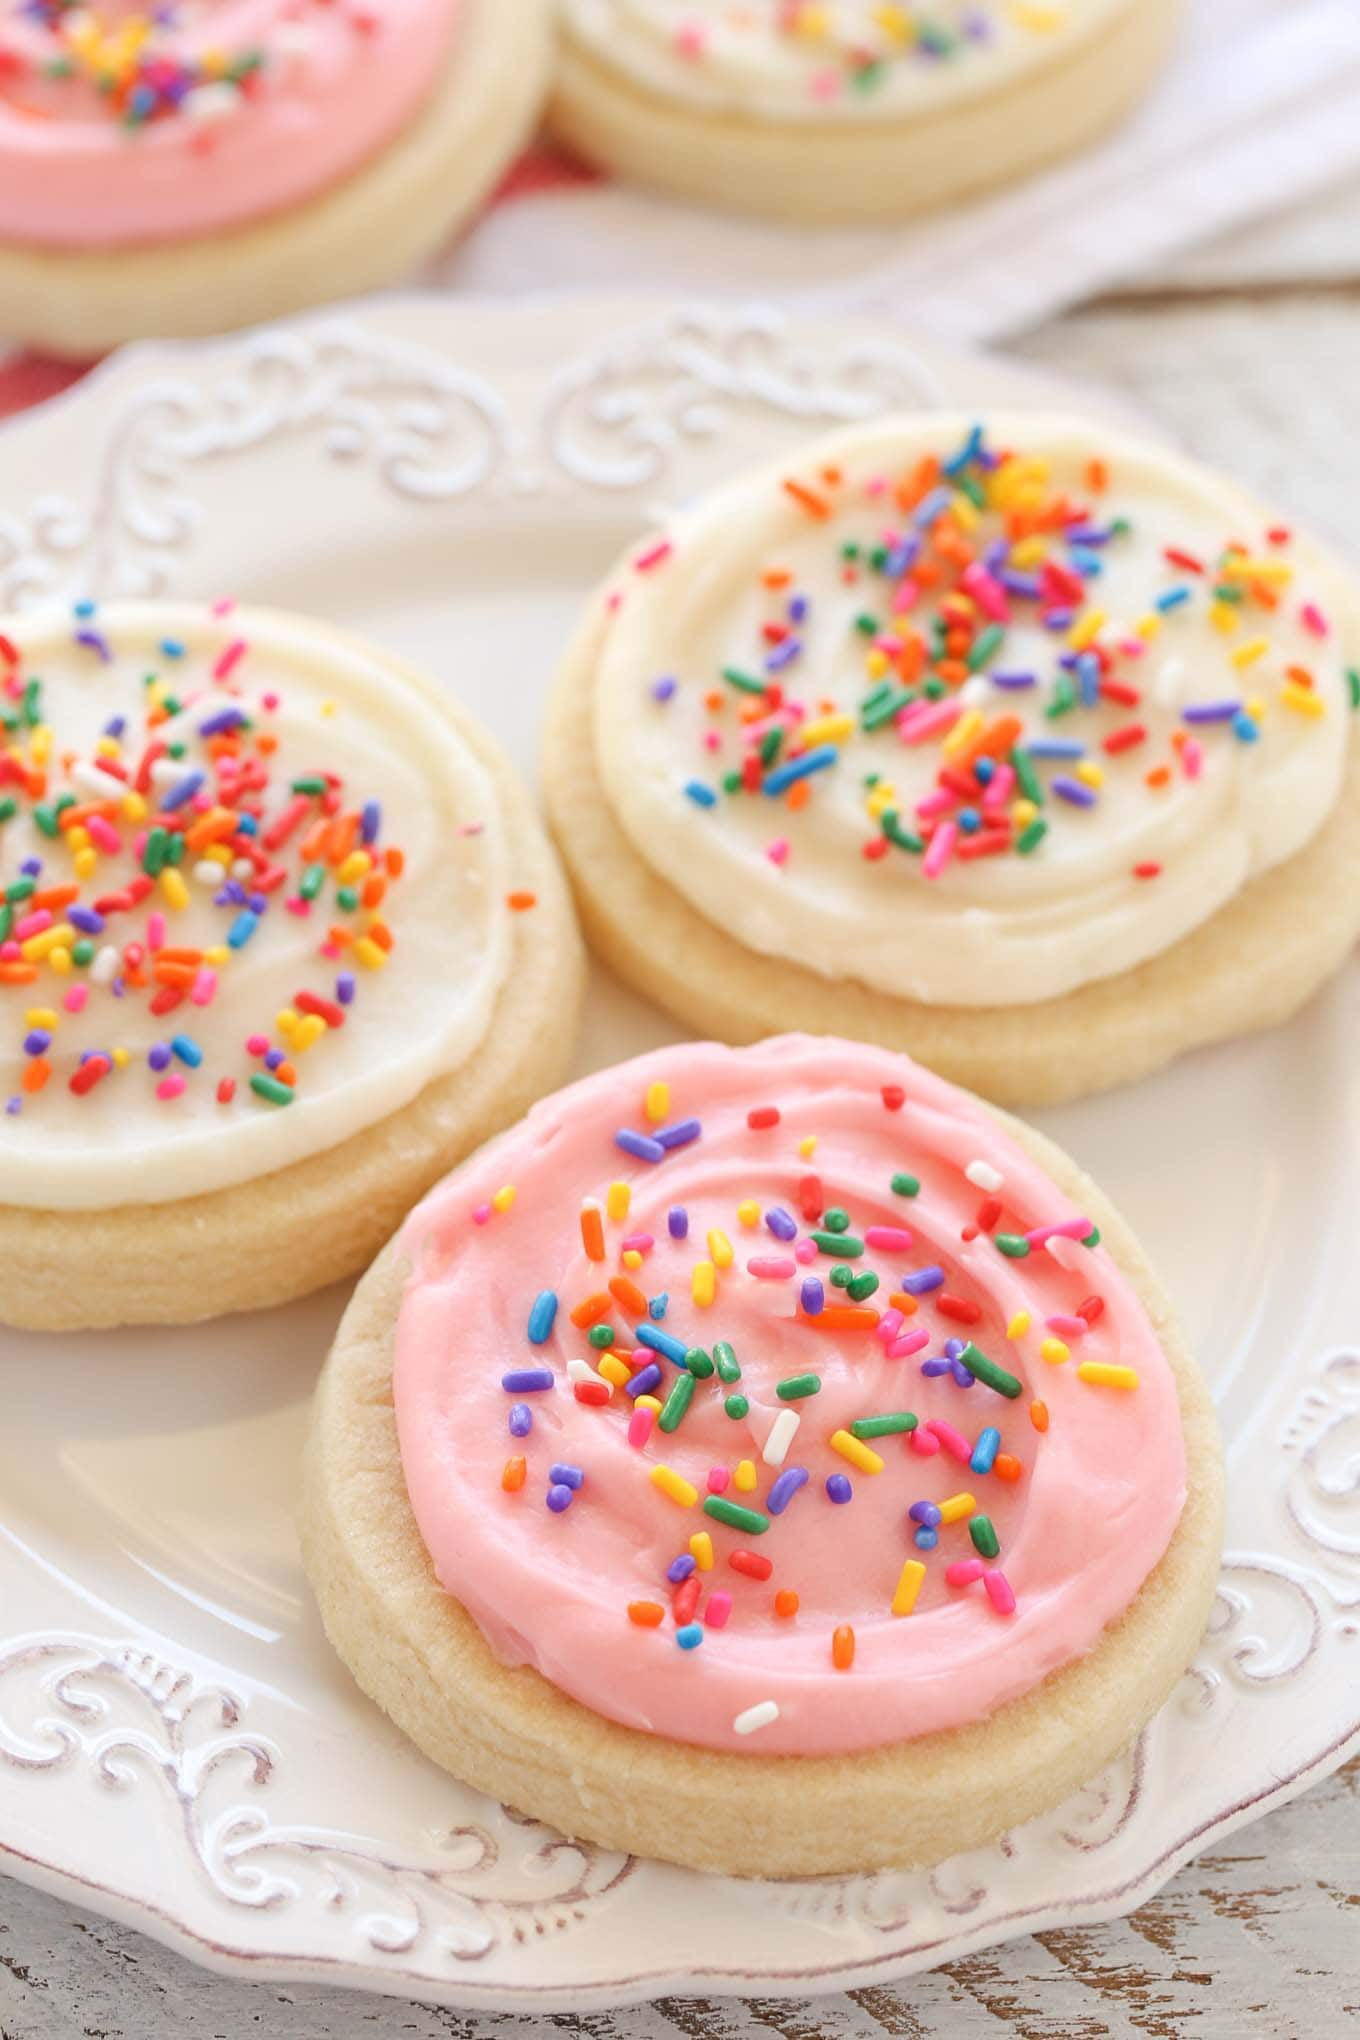 Three frosted sugar cookies on a white plate. Additional sugar cookies rest in the background.